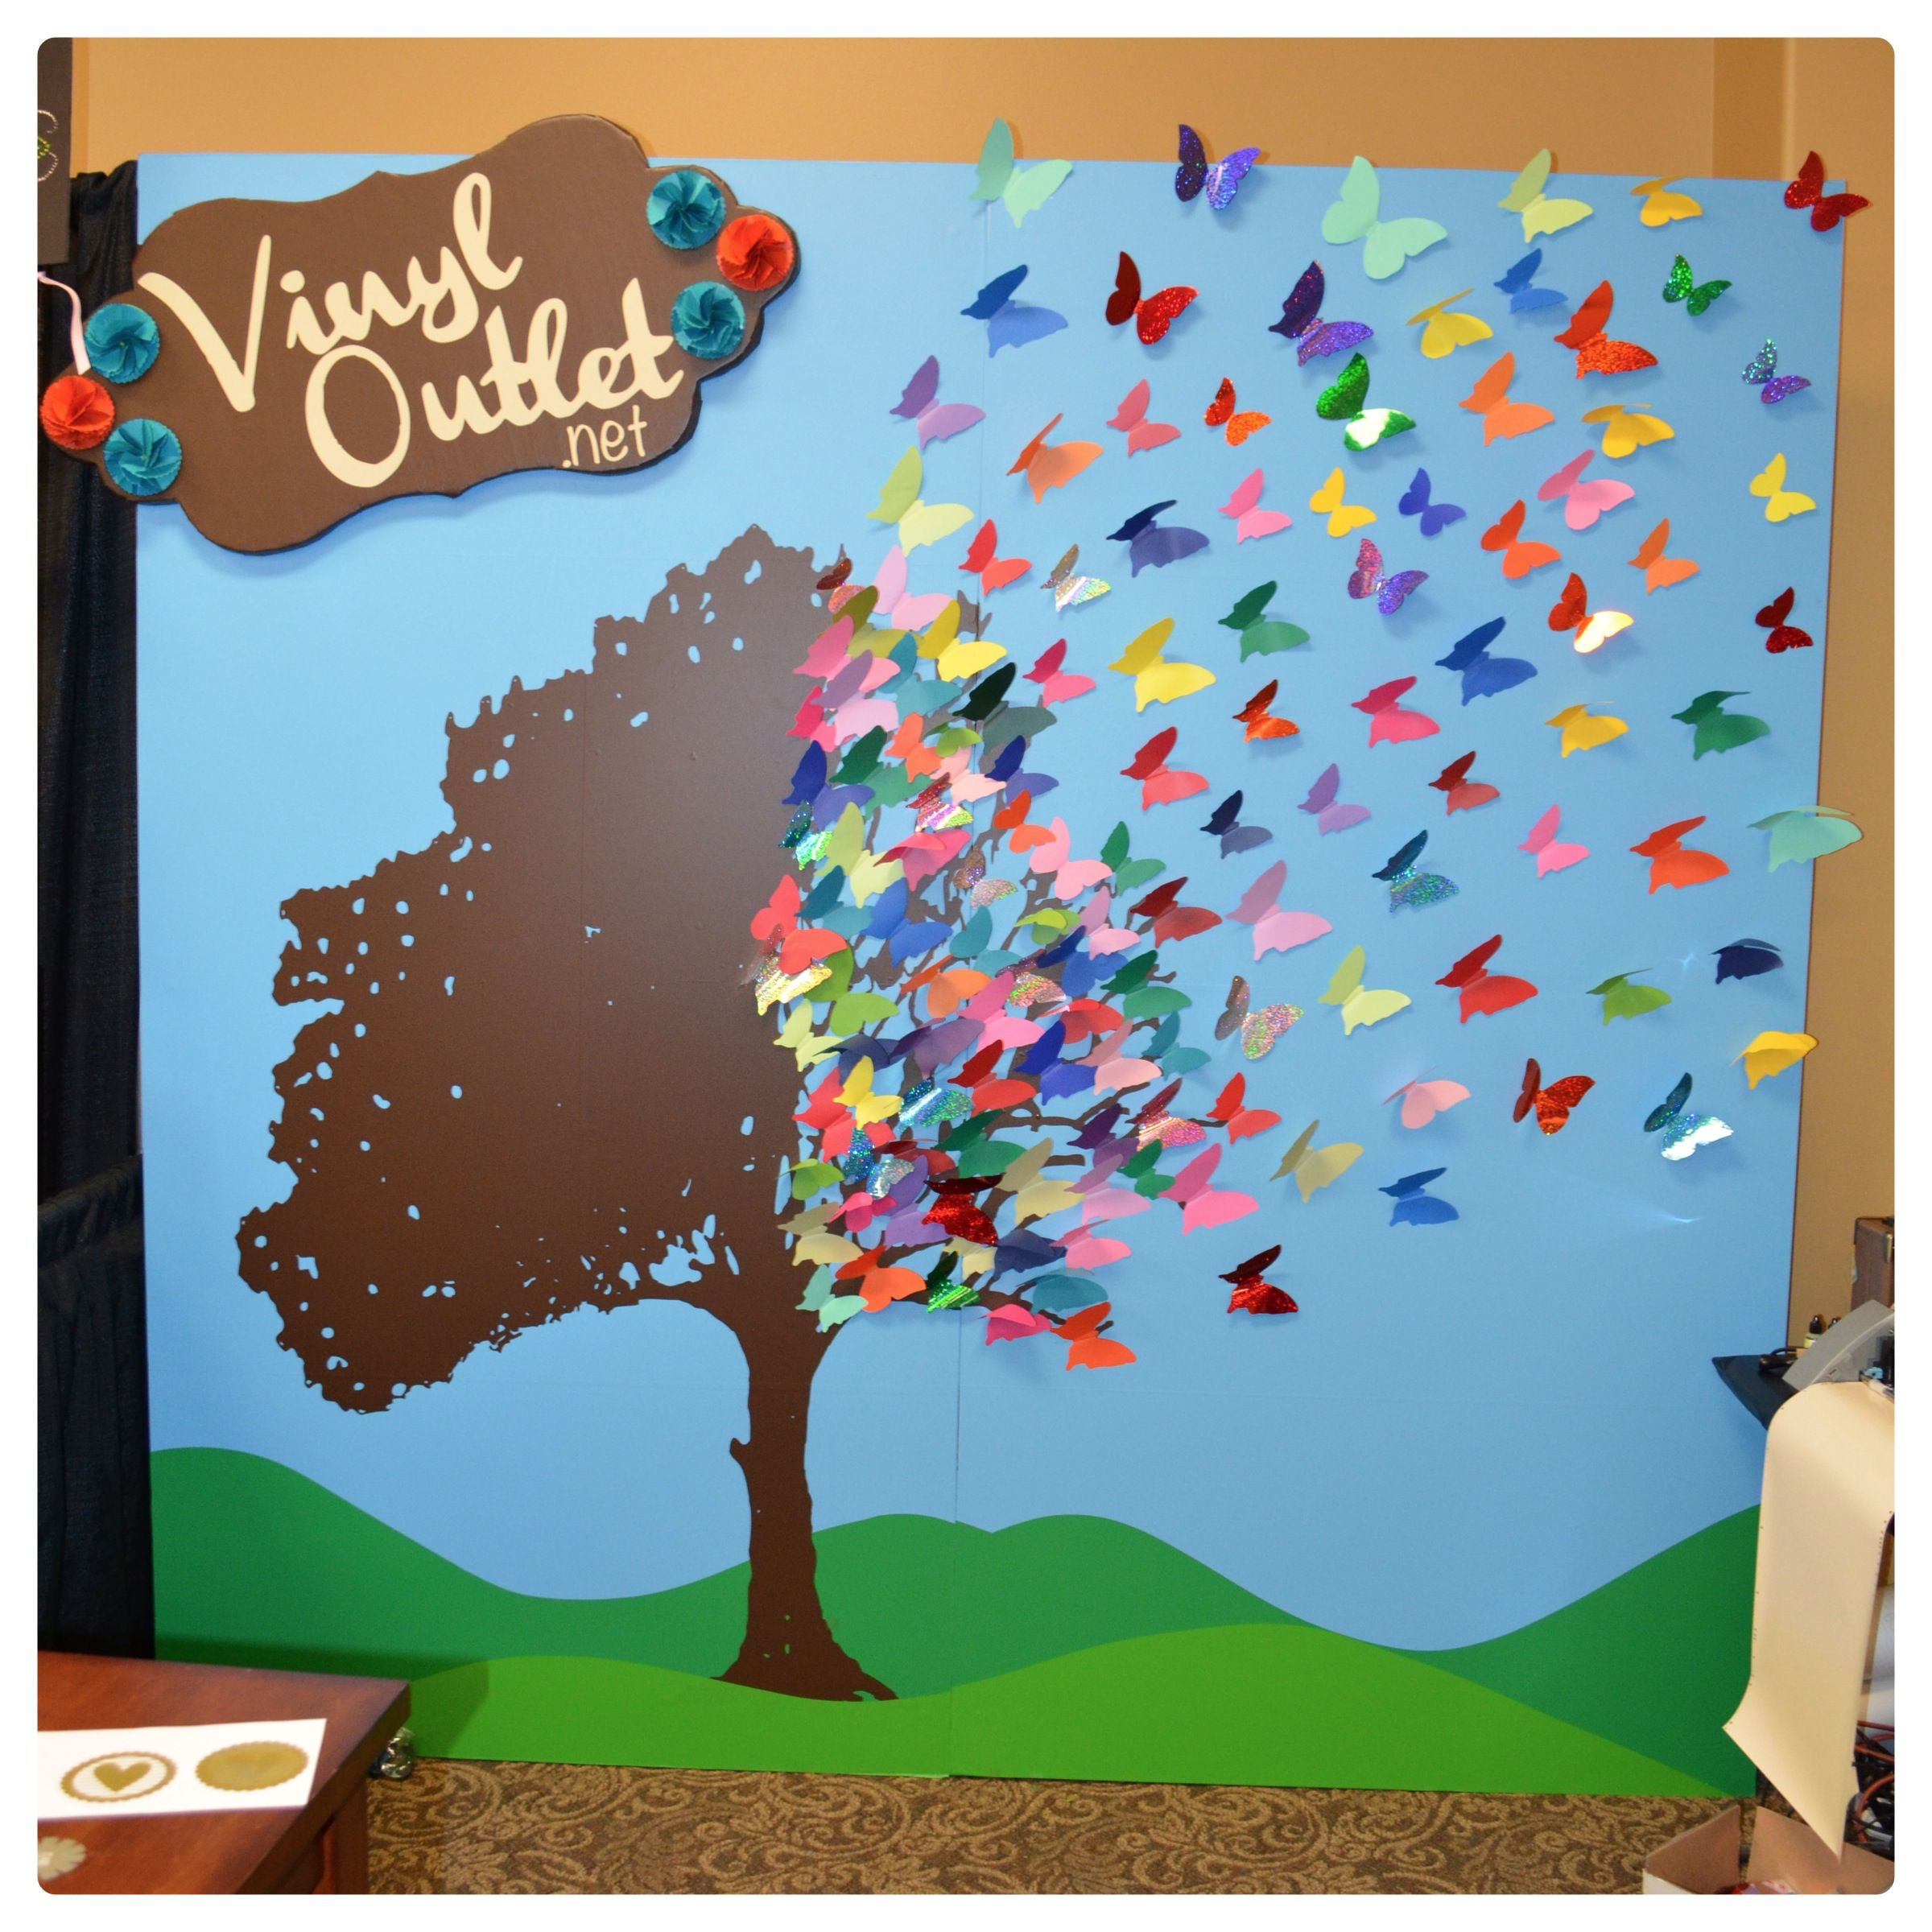 butterflypanel   #vinyloutlet One word------WOW